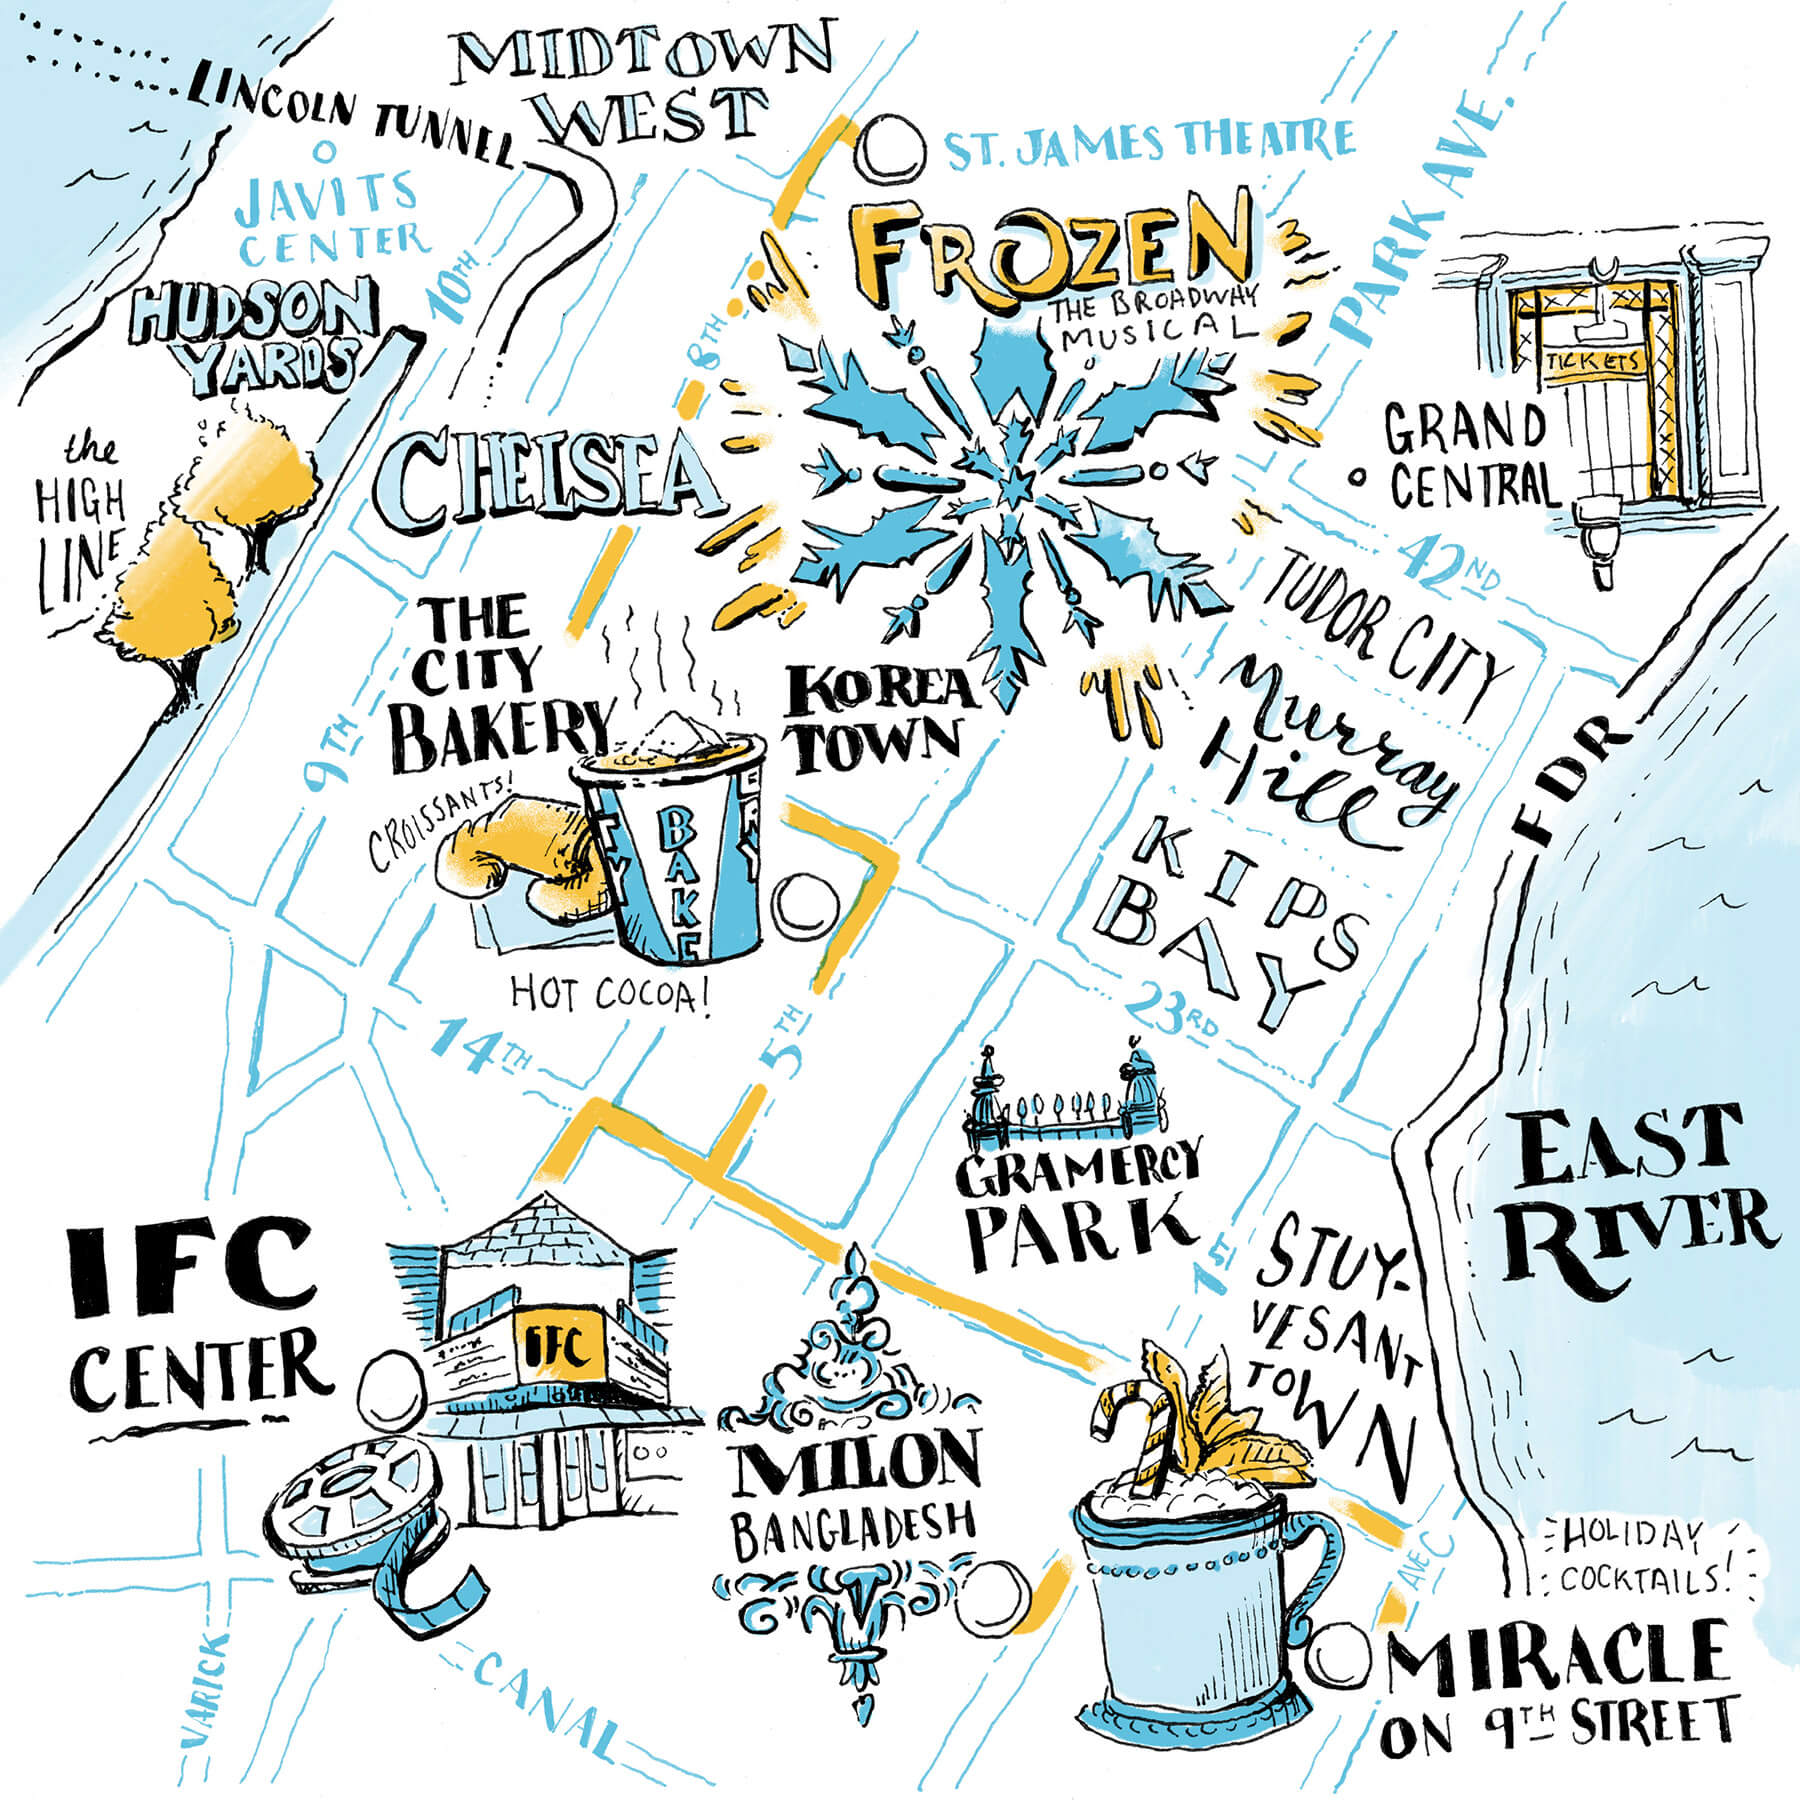 Ryan Carlos' Map - IFC Center, Milon Bangladesh, Miracle on 9th Street, Frozen the Broadway Musical, The City Bakery, and more.